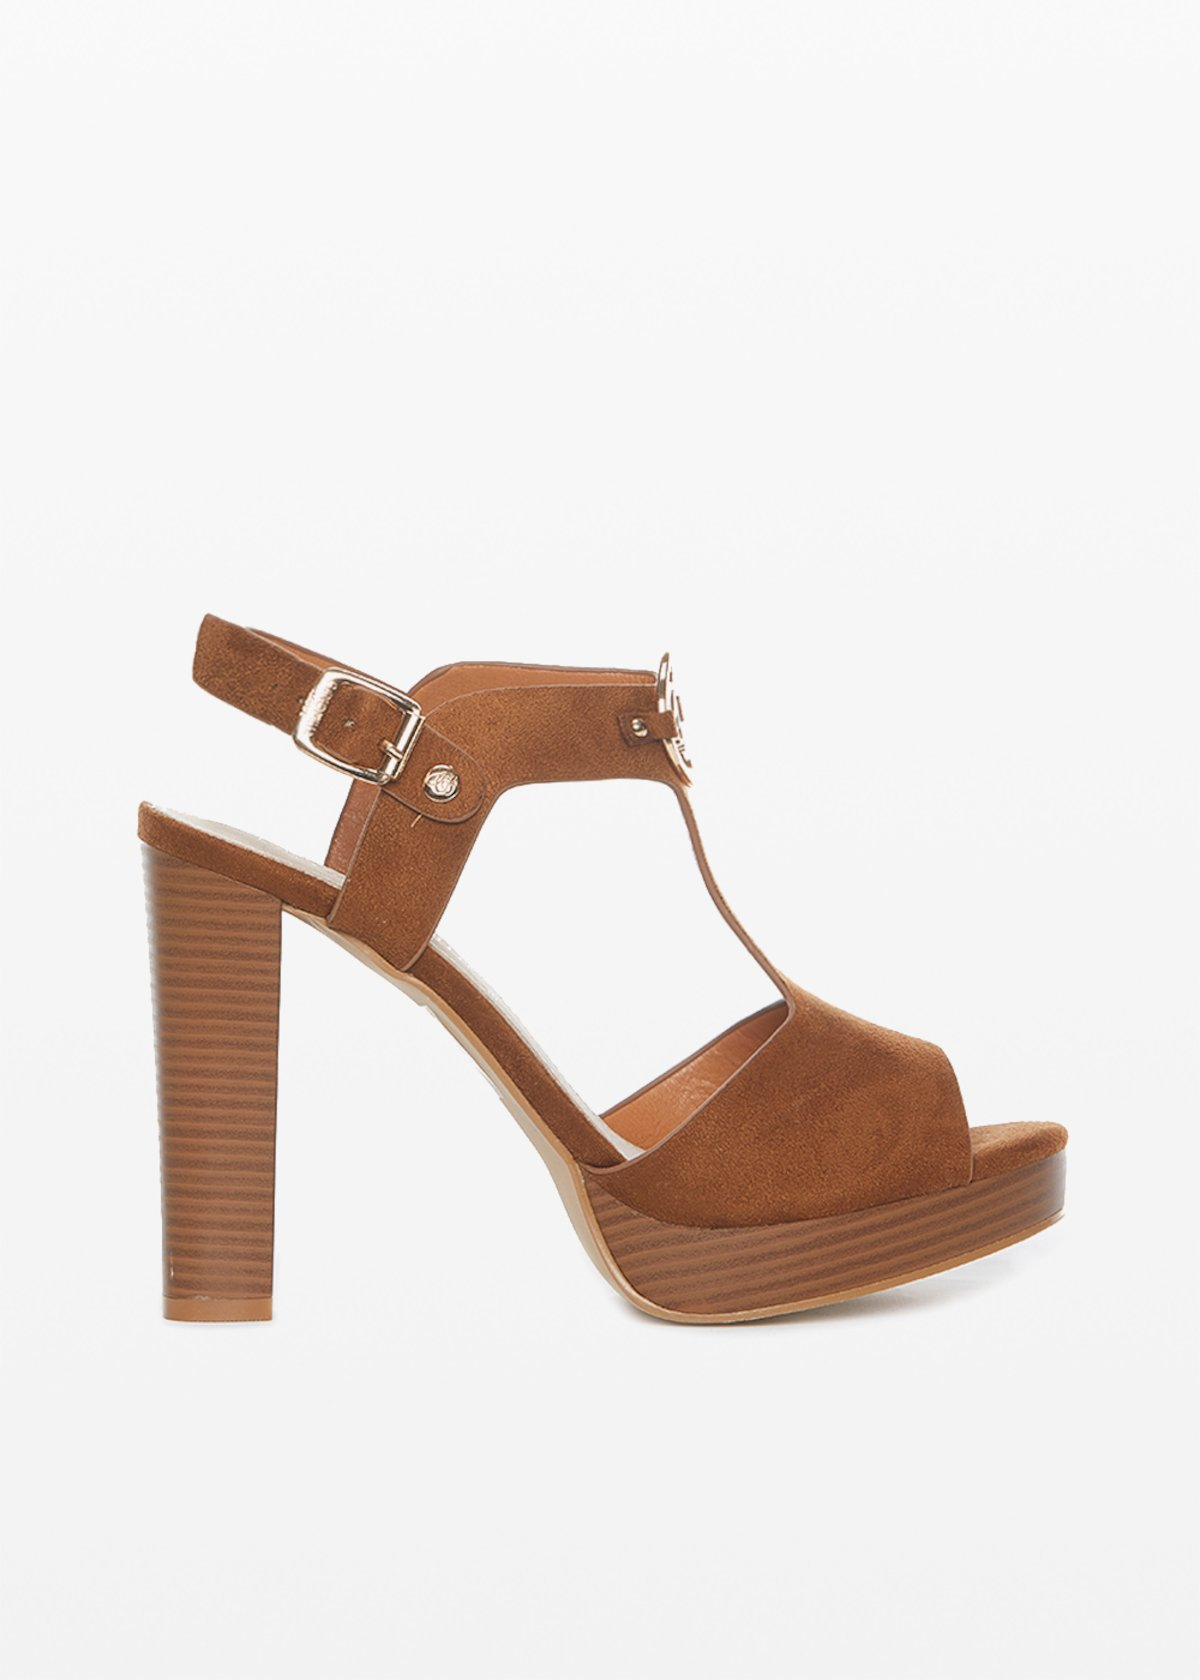 Sexia sandal with light gold metal ring - Tobacco - Woman - Category image